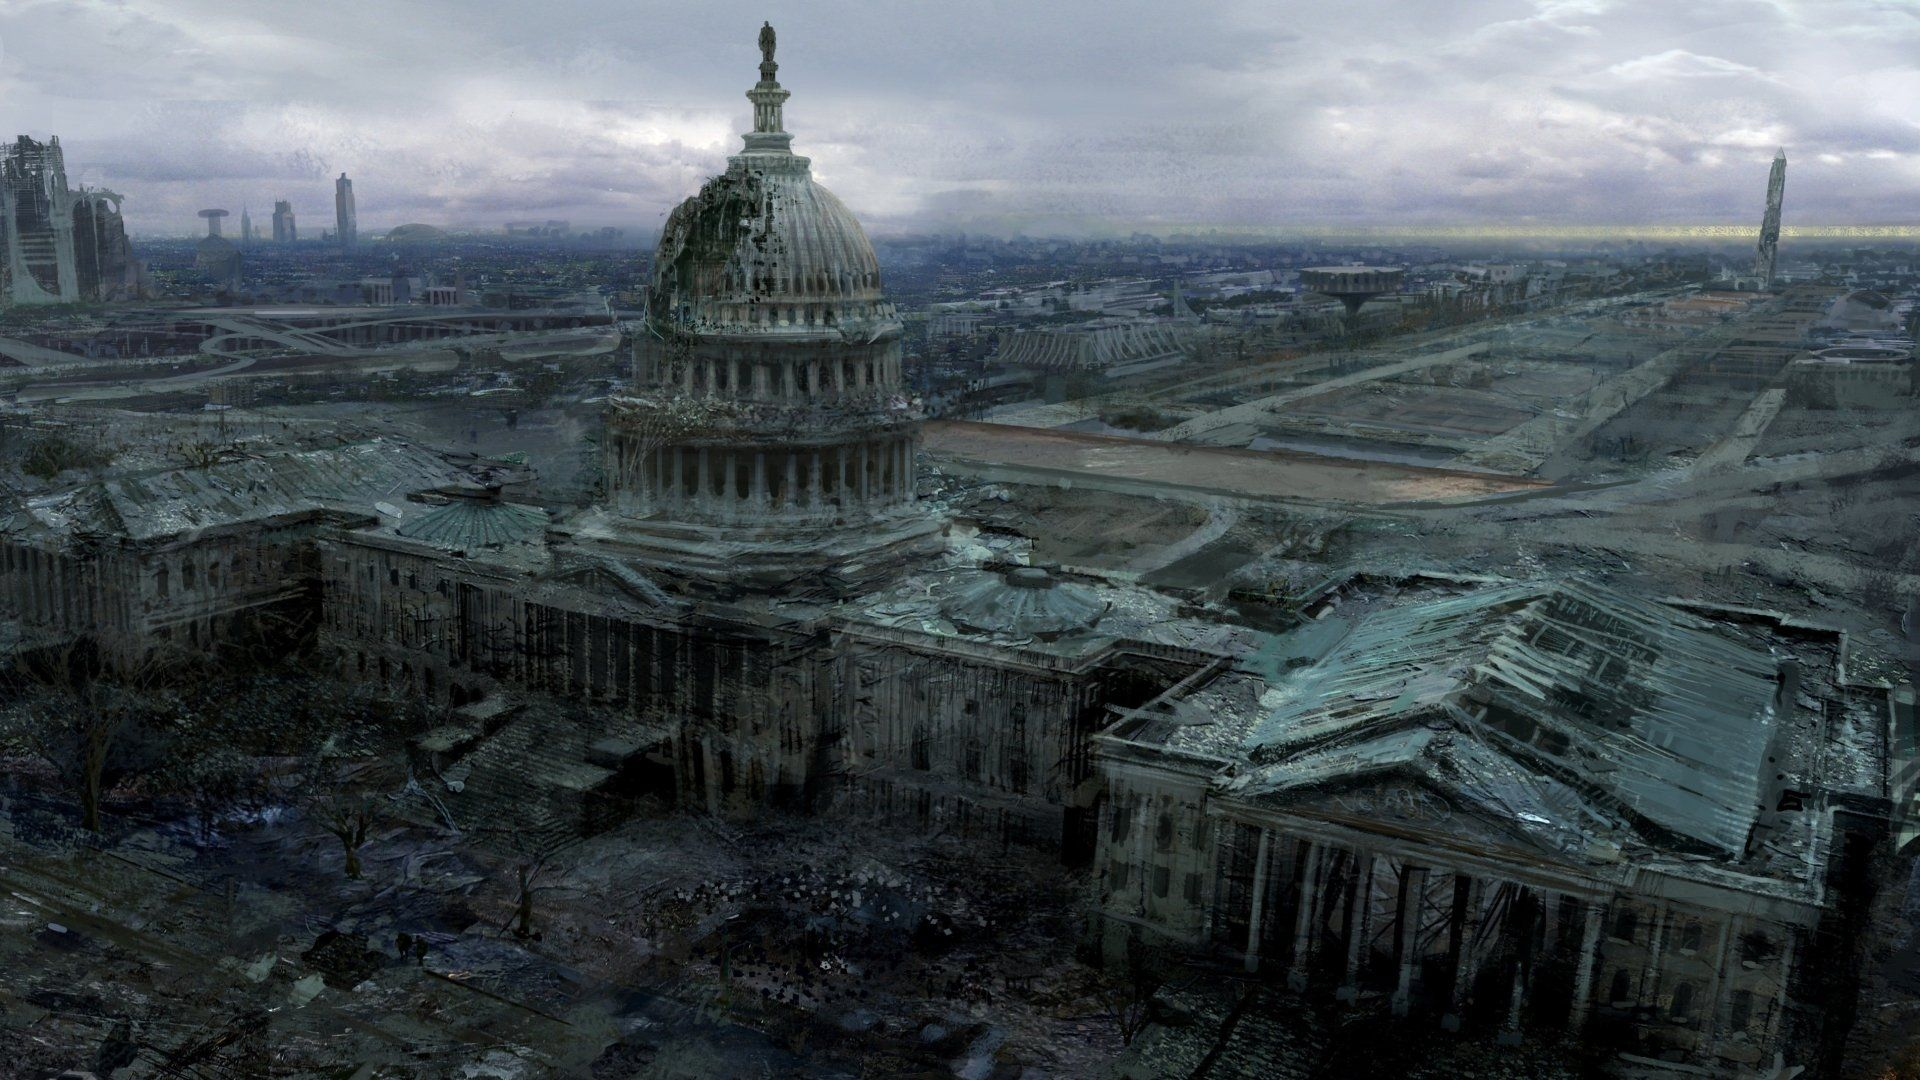 Video Game Fallout 3 Fallout Capitol Post Apocalyptic Wallpaper Collapse Of America Post Apocalypse Apocalyptic